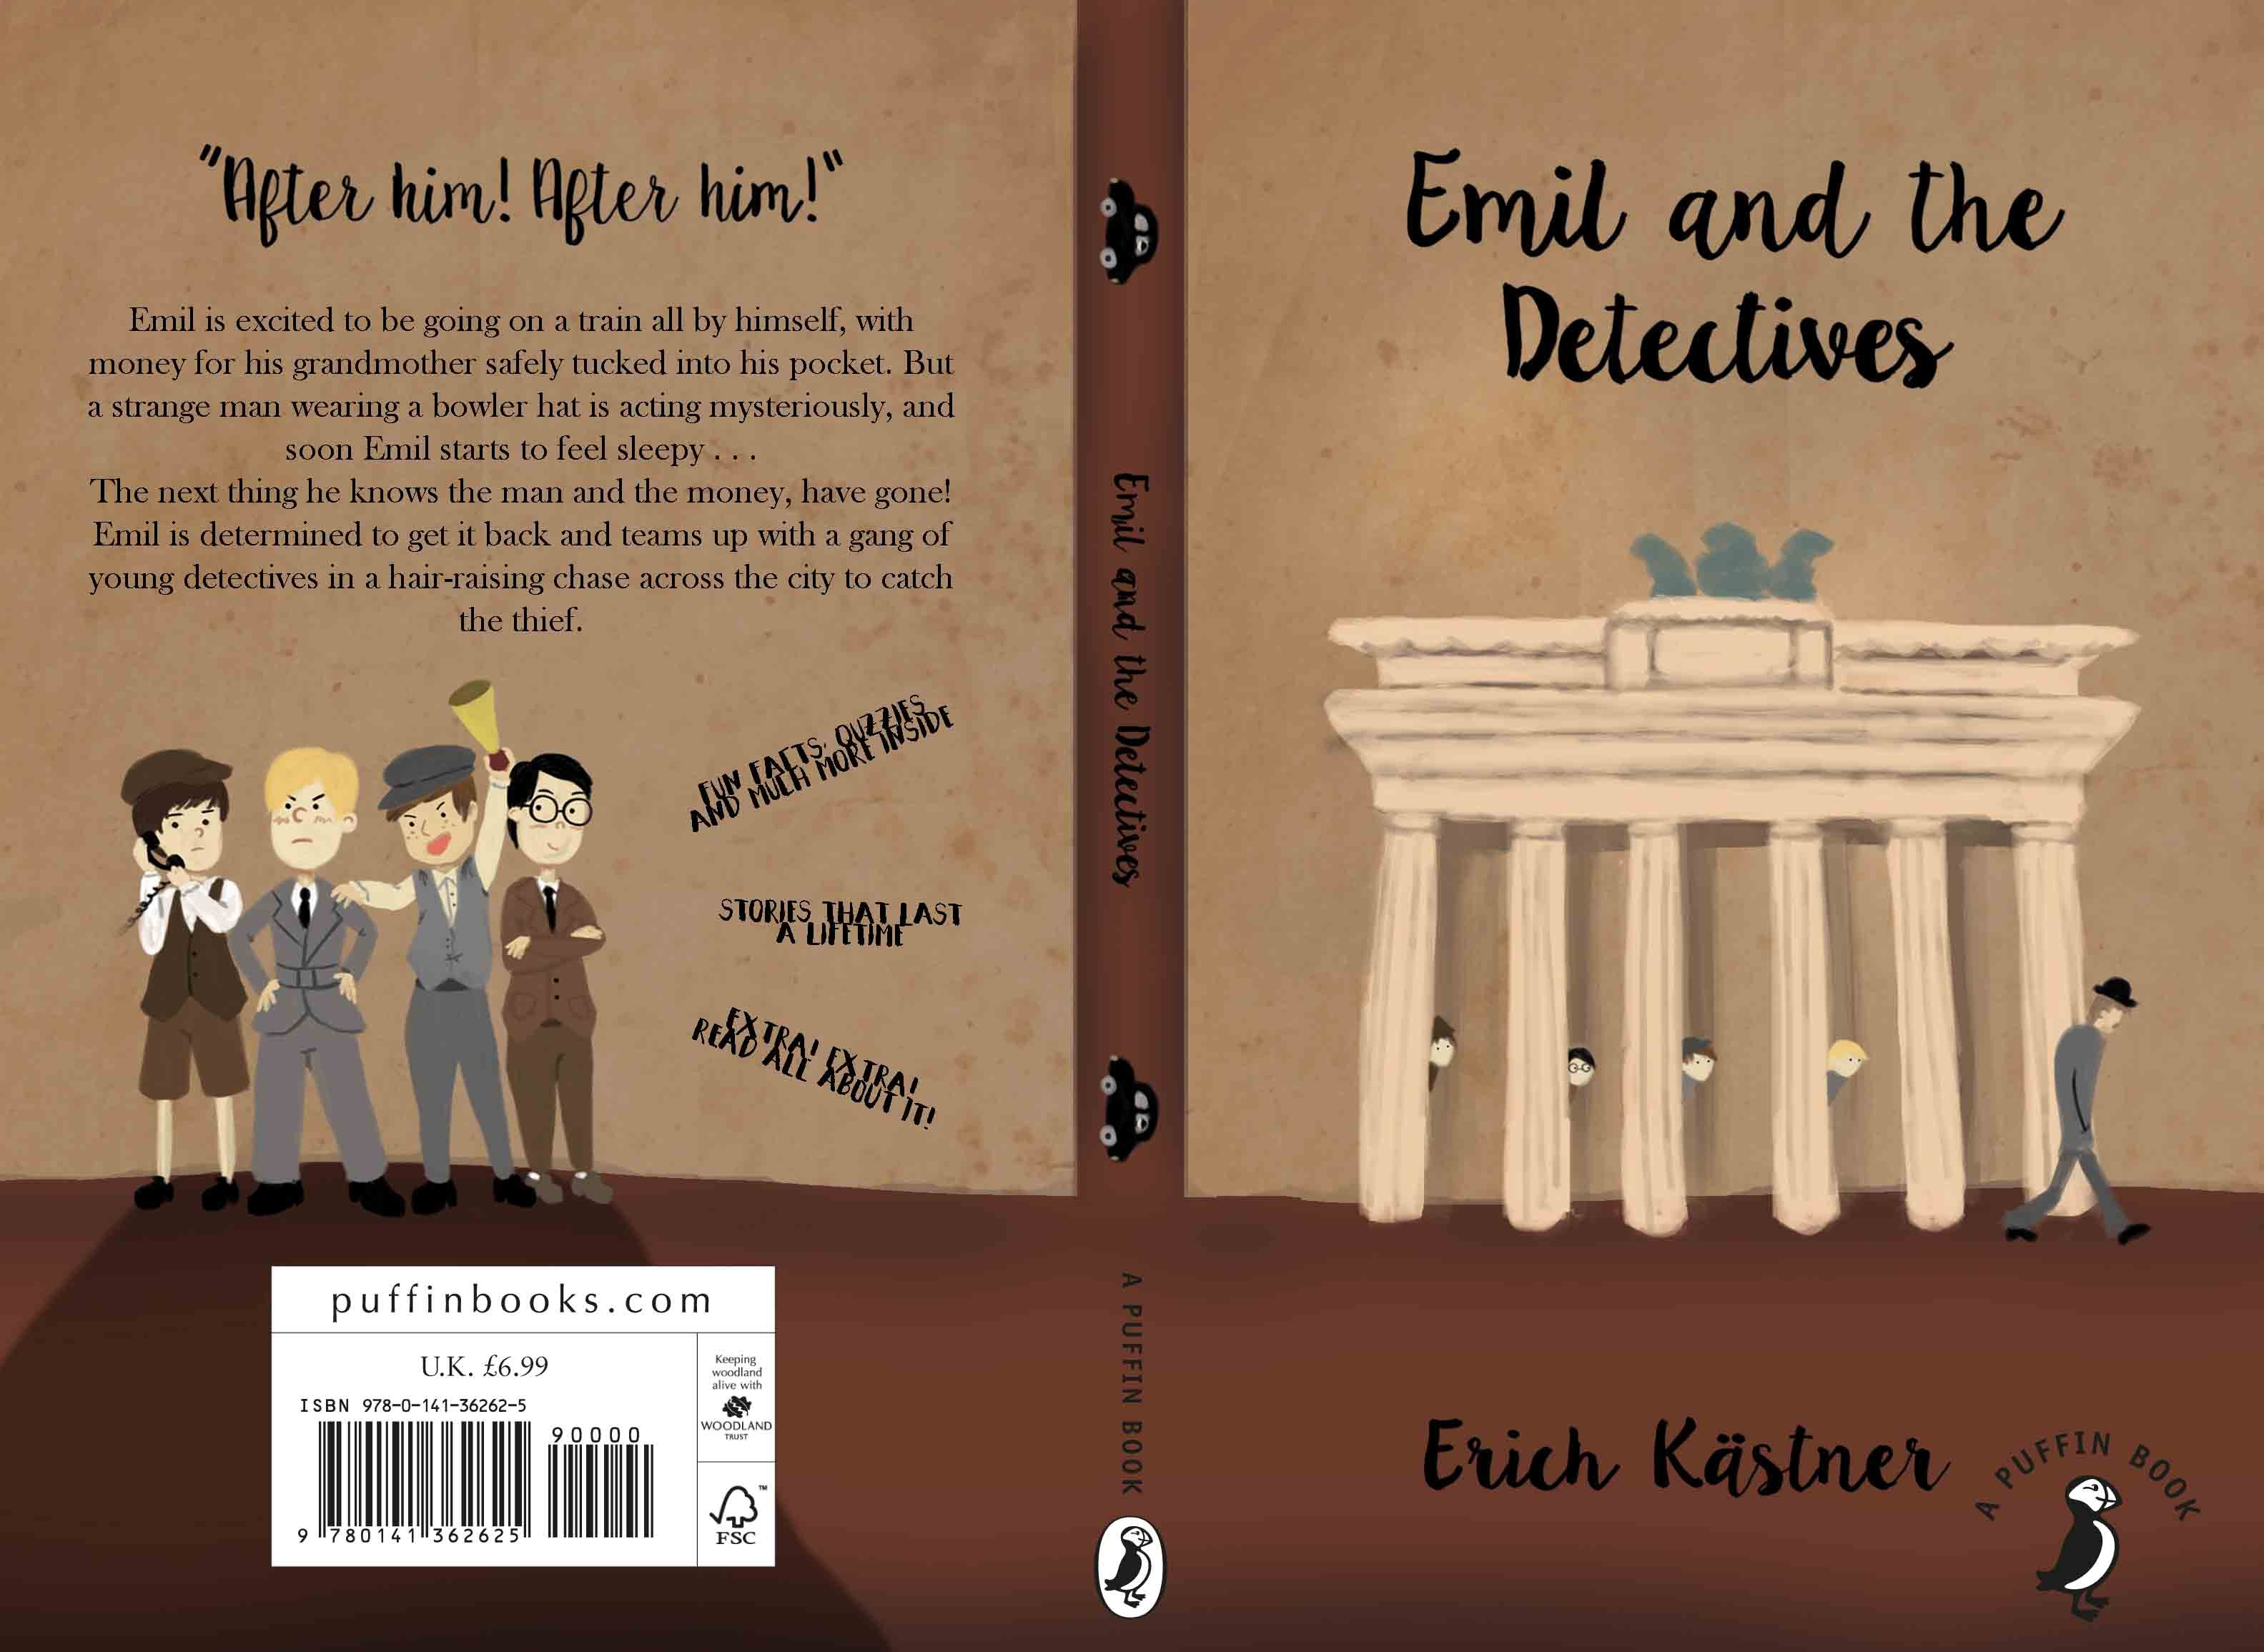 Emil and the Detectives Book Cover